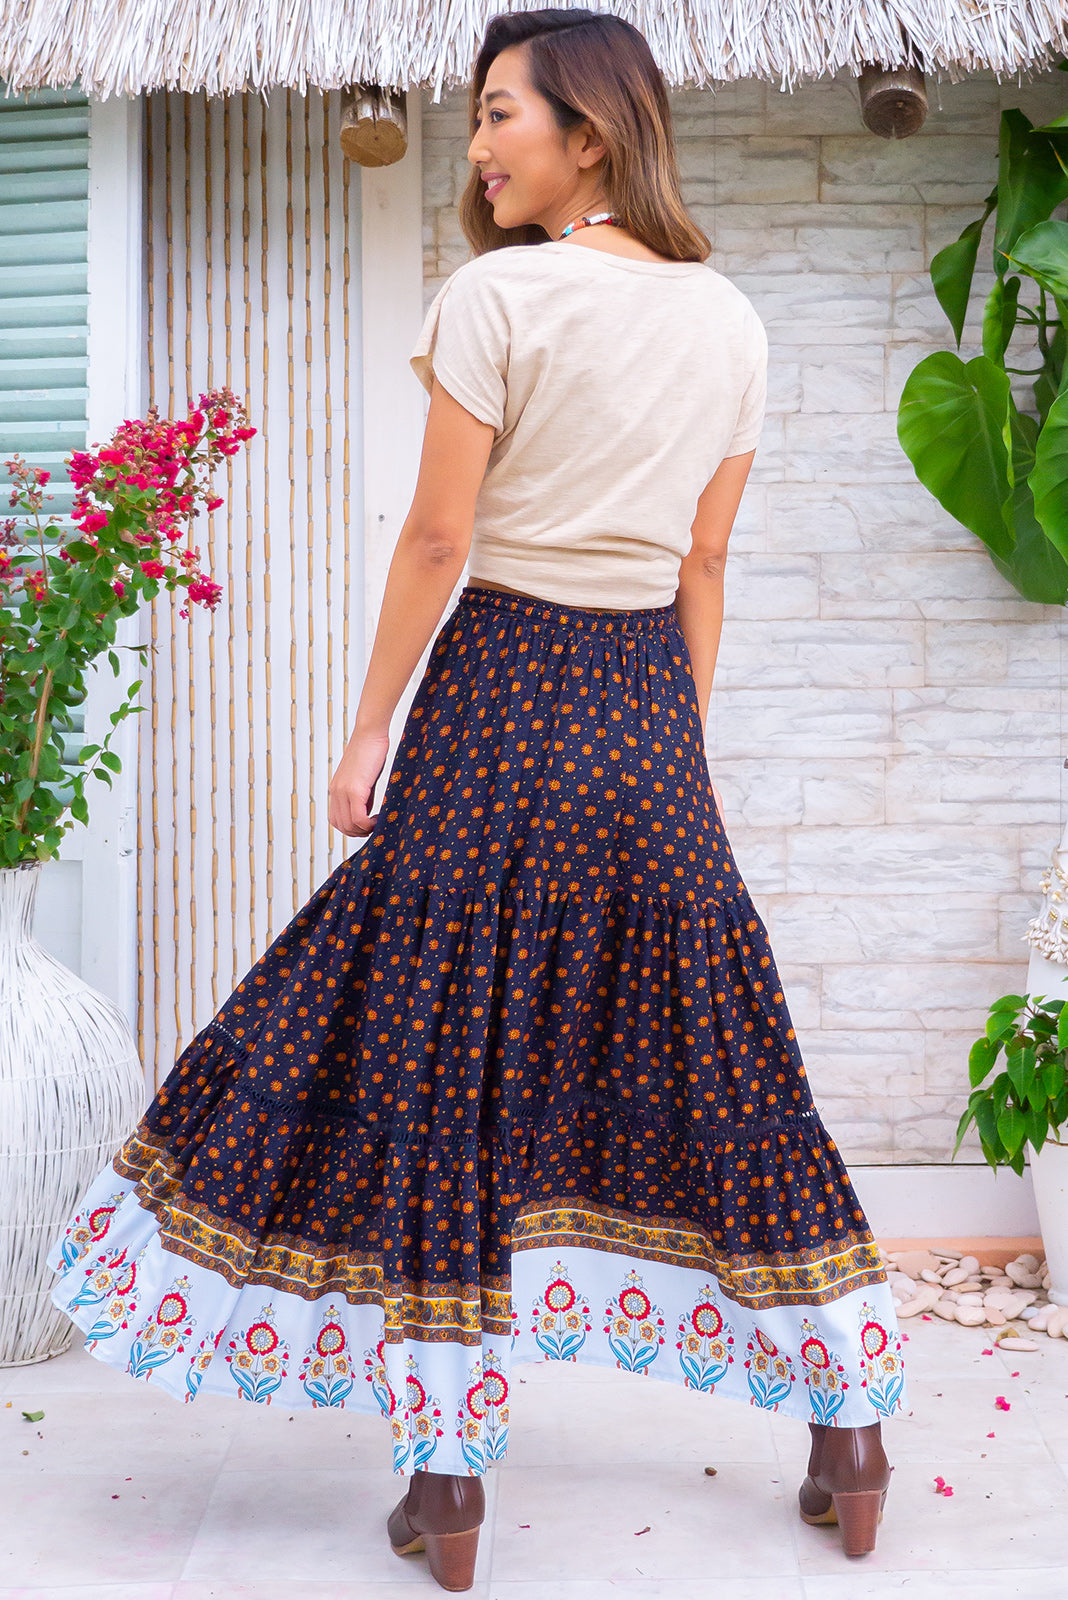 Trina Celestial Ink Maxi Skirt has elasticated, drawstring waistband, tiered skirt with lace insert, border print hem, ink base with golden suns and colourful folk border print in woven 100% rayon.